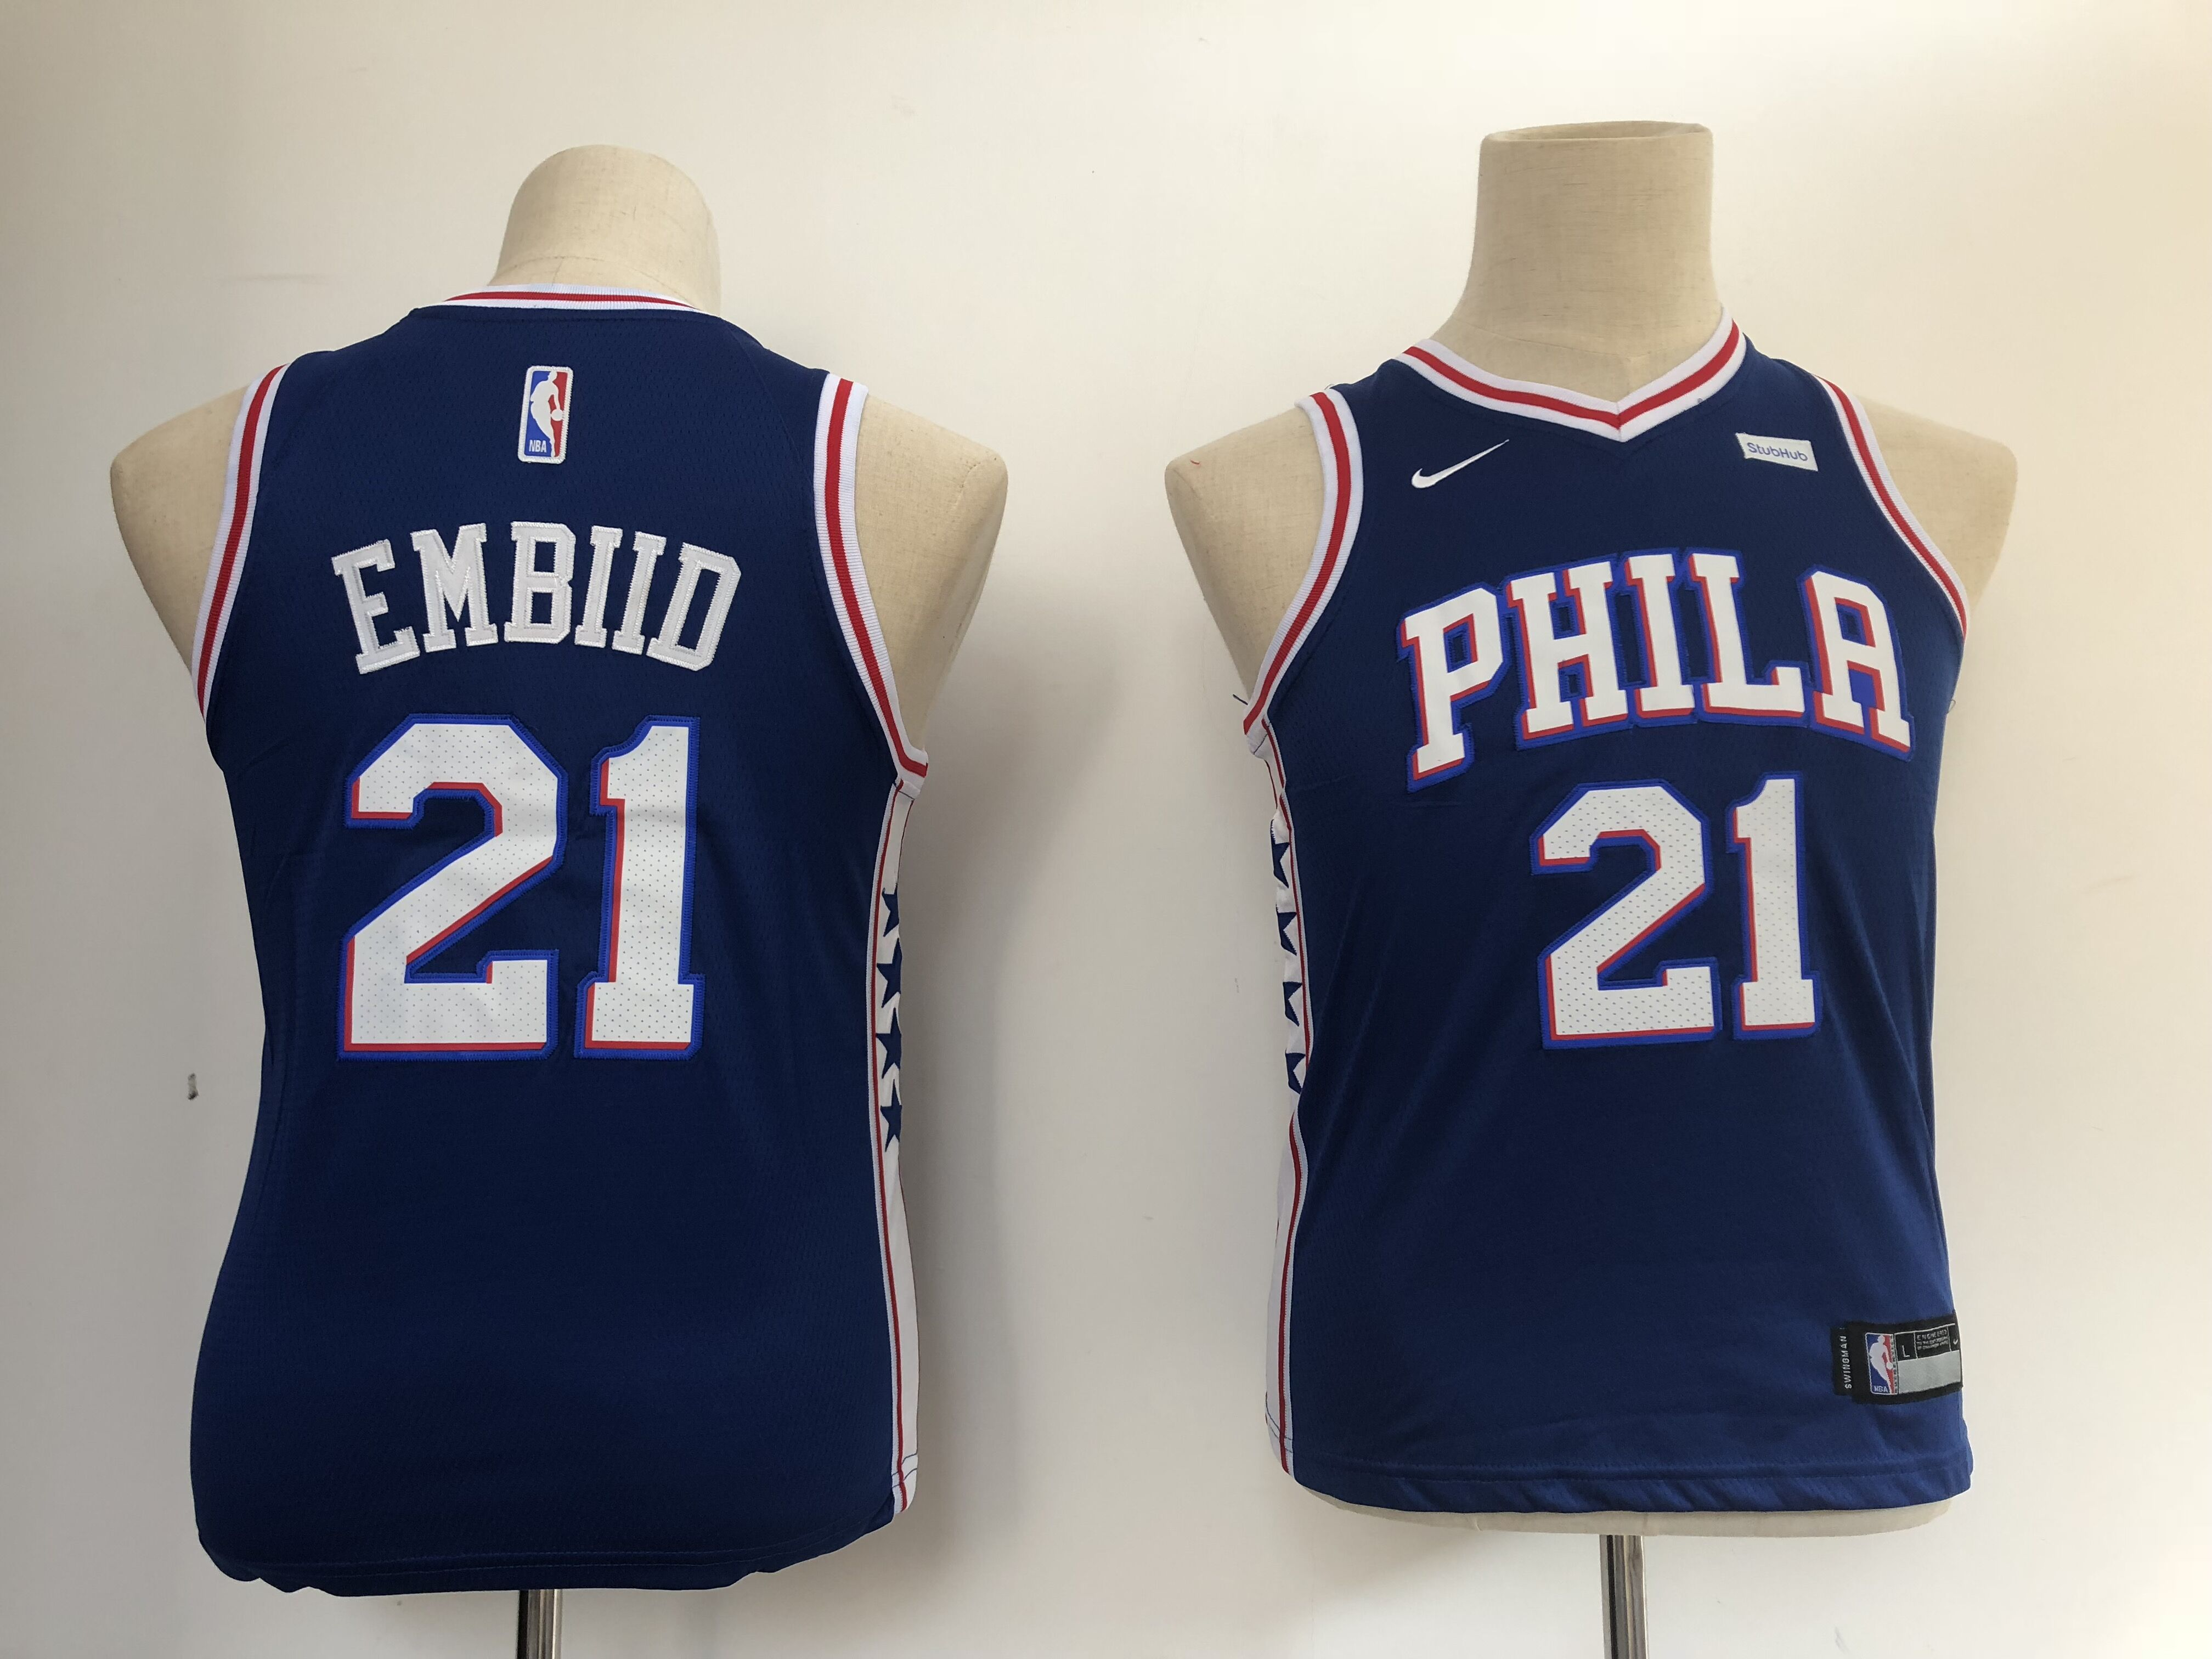 Youth Philadelphia 76ers 21 Embiid blue Nike NBA Jerseys